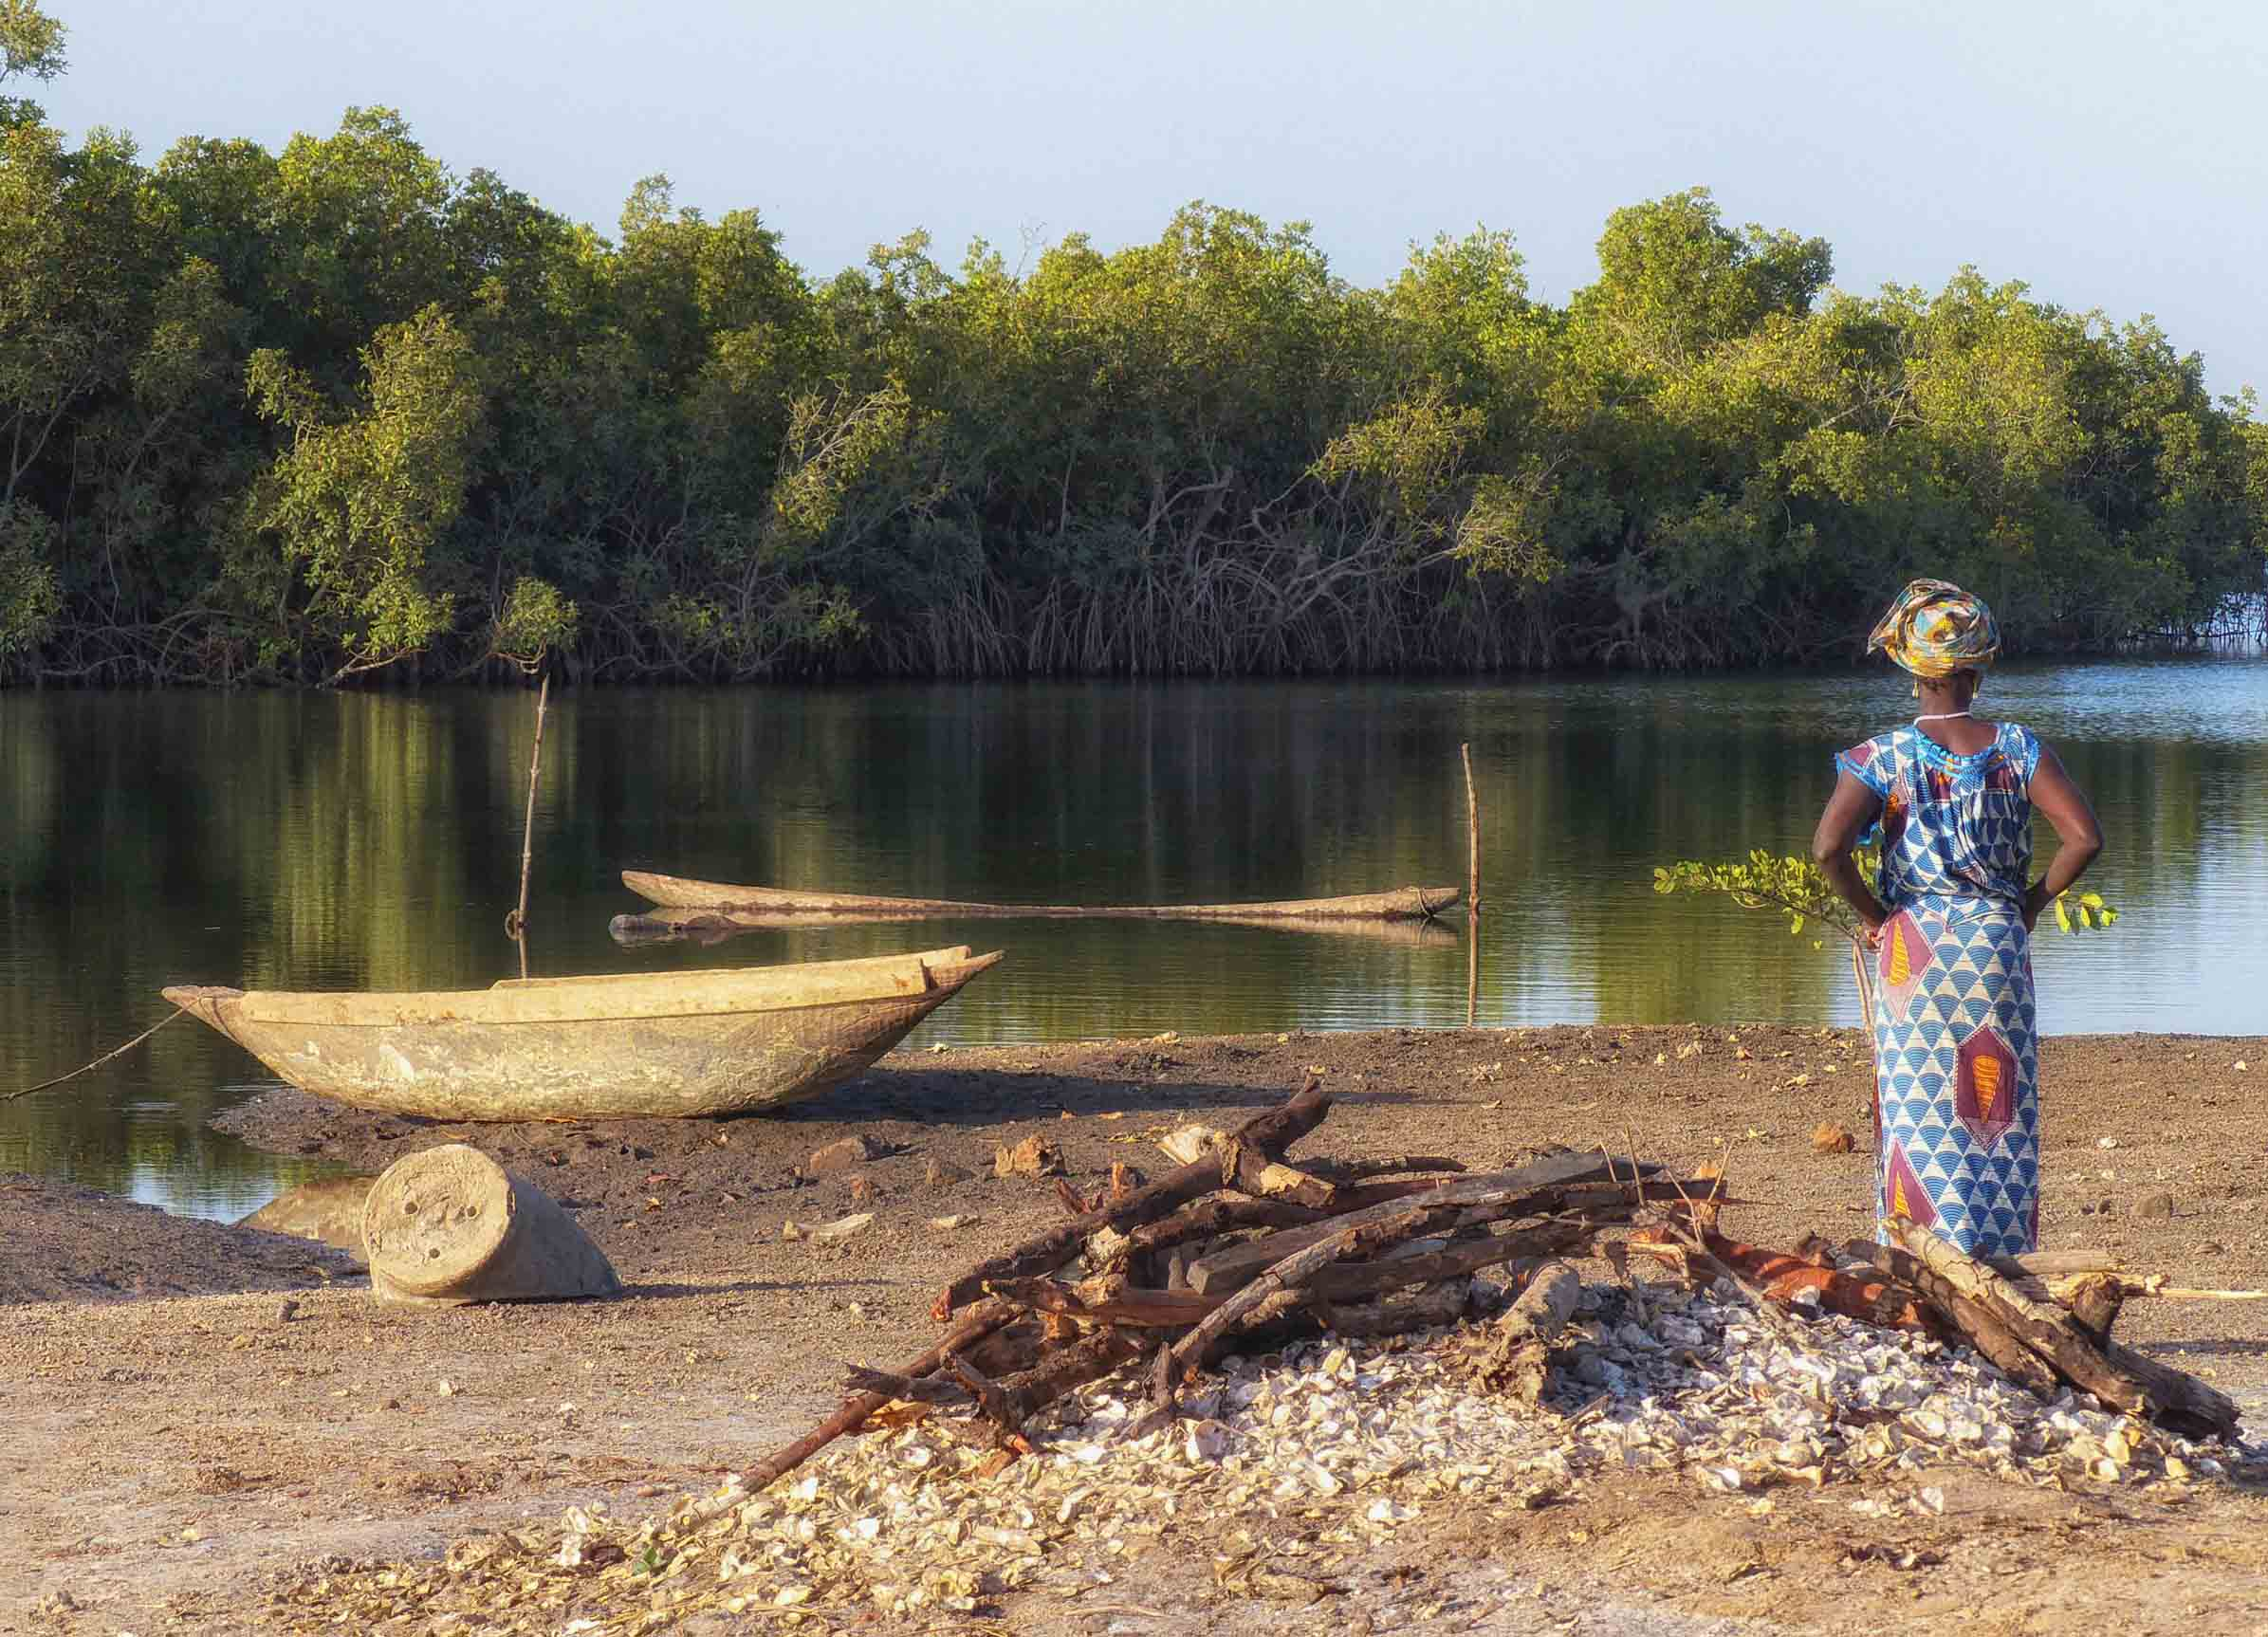 Woman standing by oyster shell pile, looking out at a river